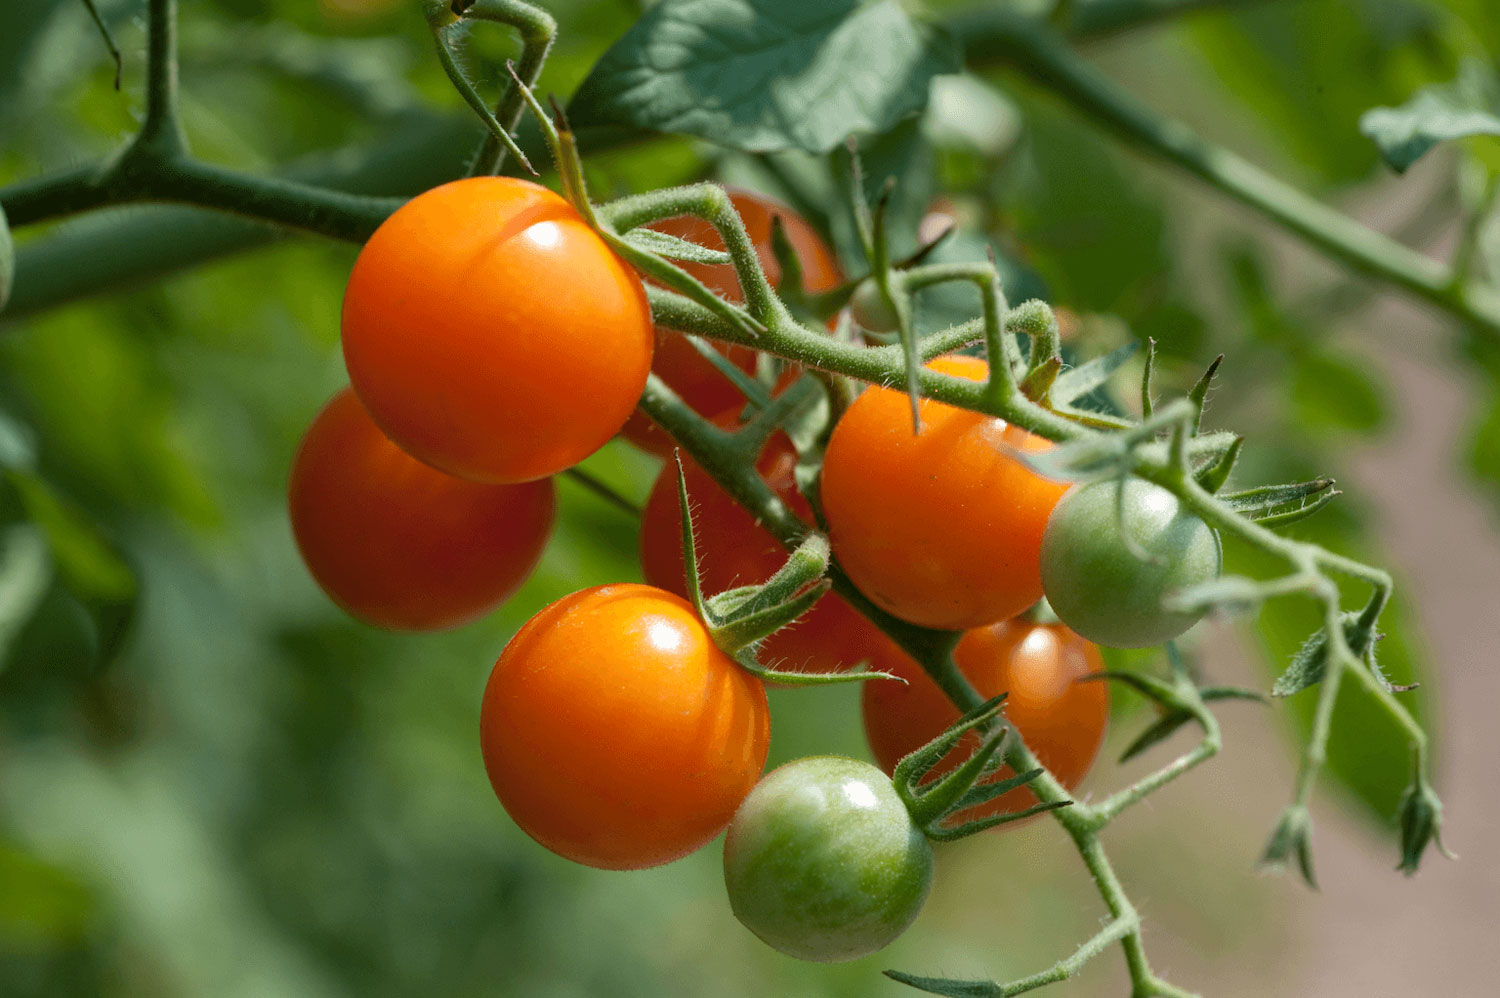 H&G Sherman tomatoes